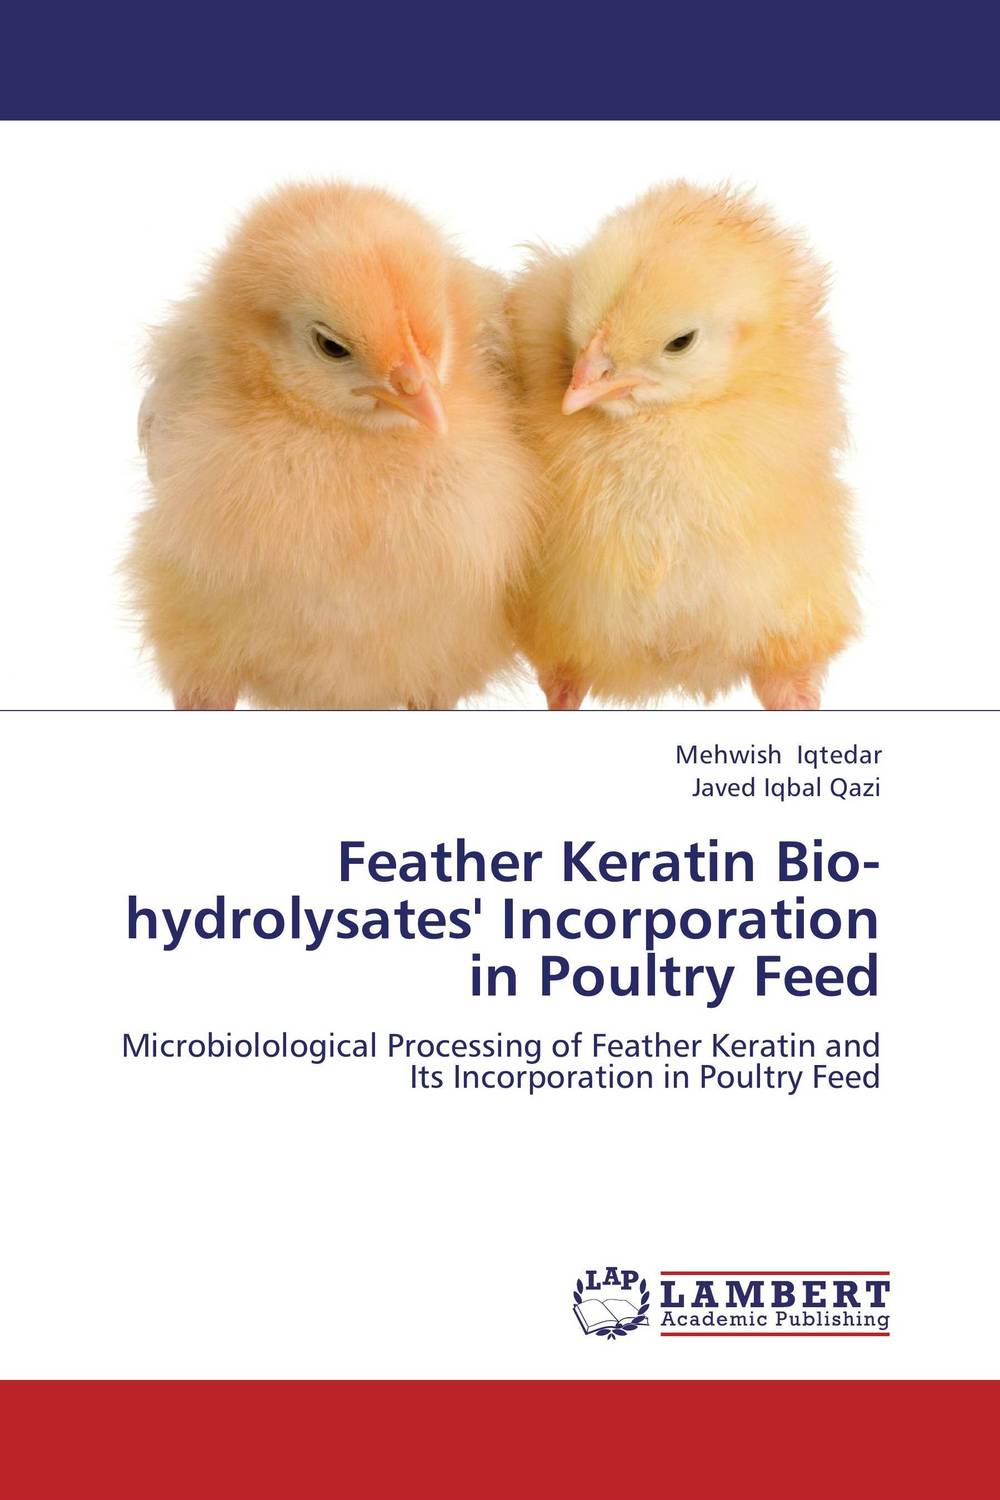 Feather Keratin Bio-hydrolysates' Incorporation in Poultry Feed using crayfish waste meal and poultry offal meal in place of fishmeal